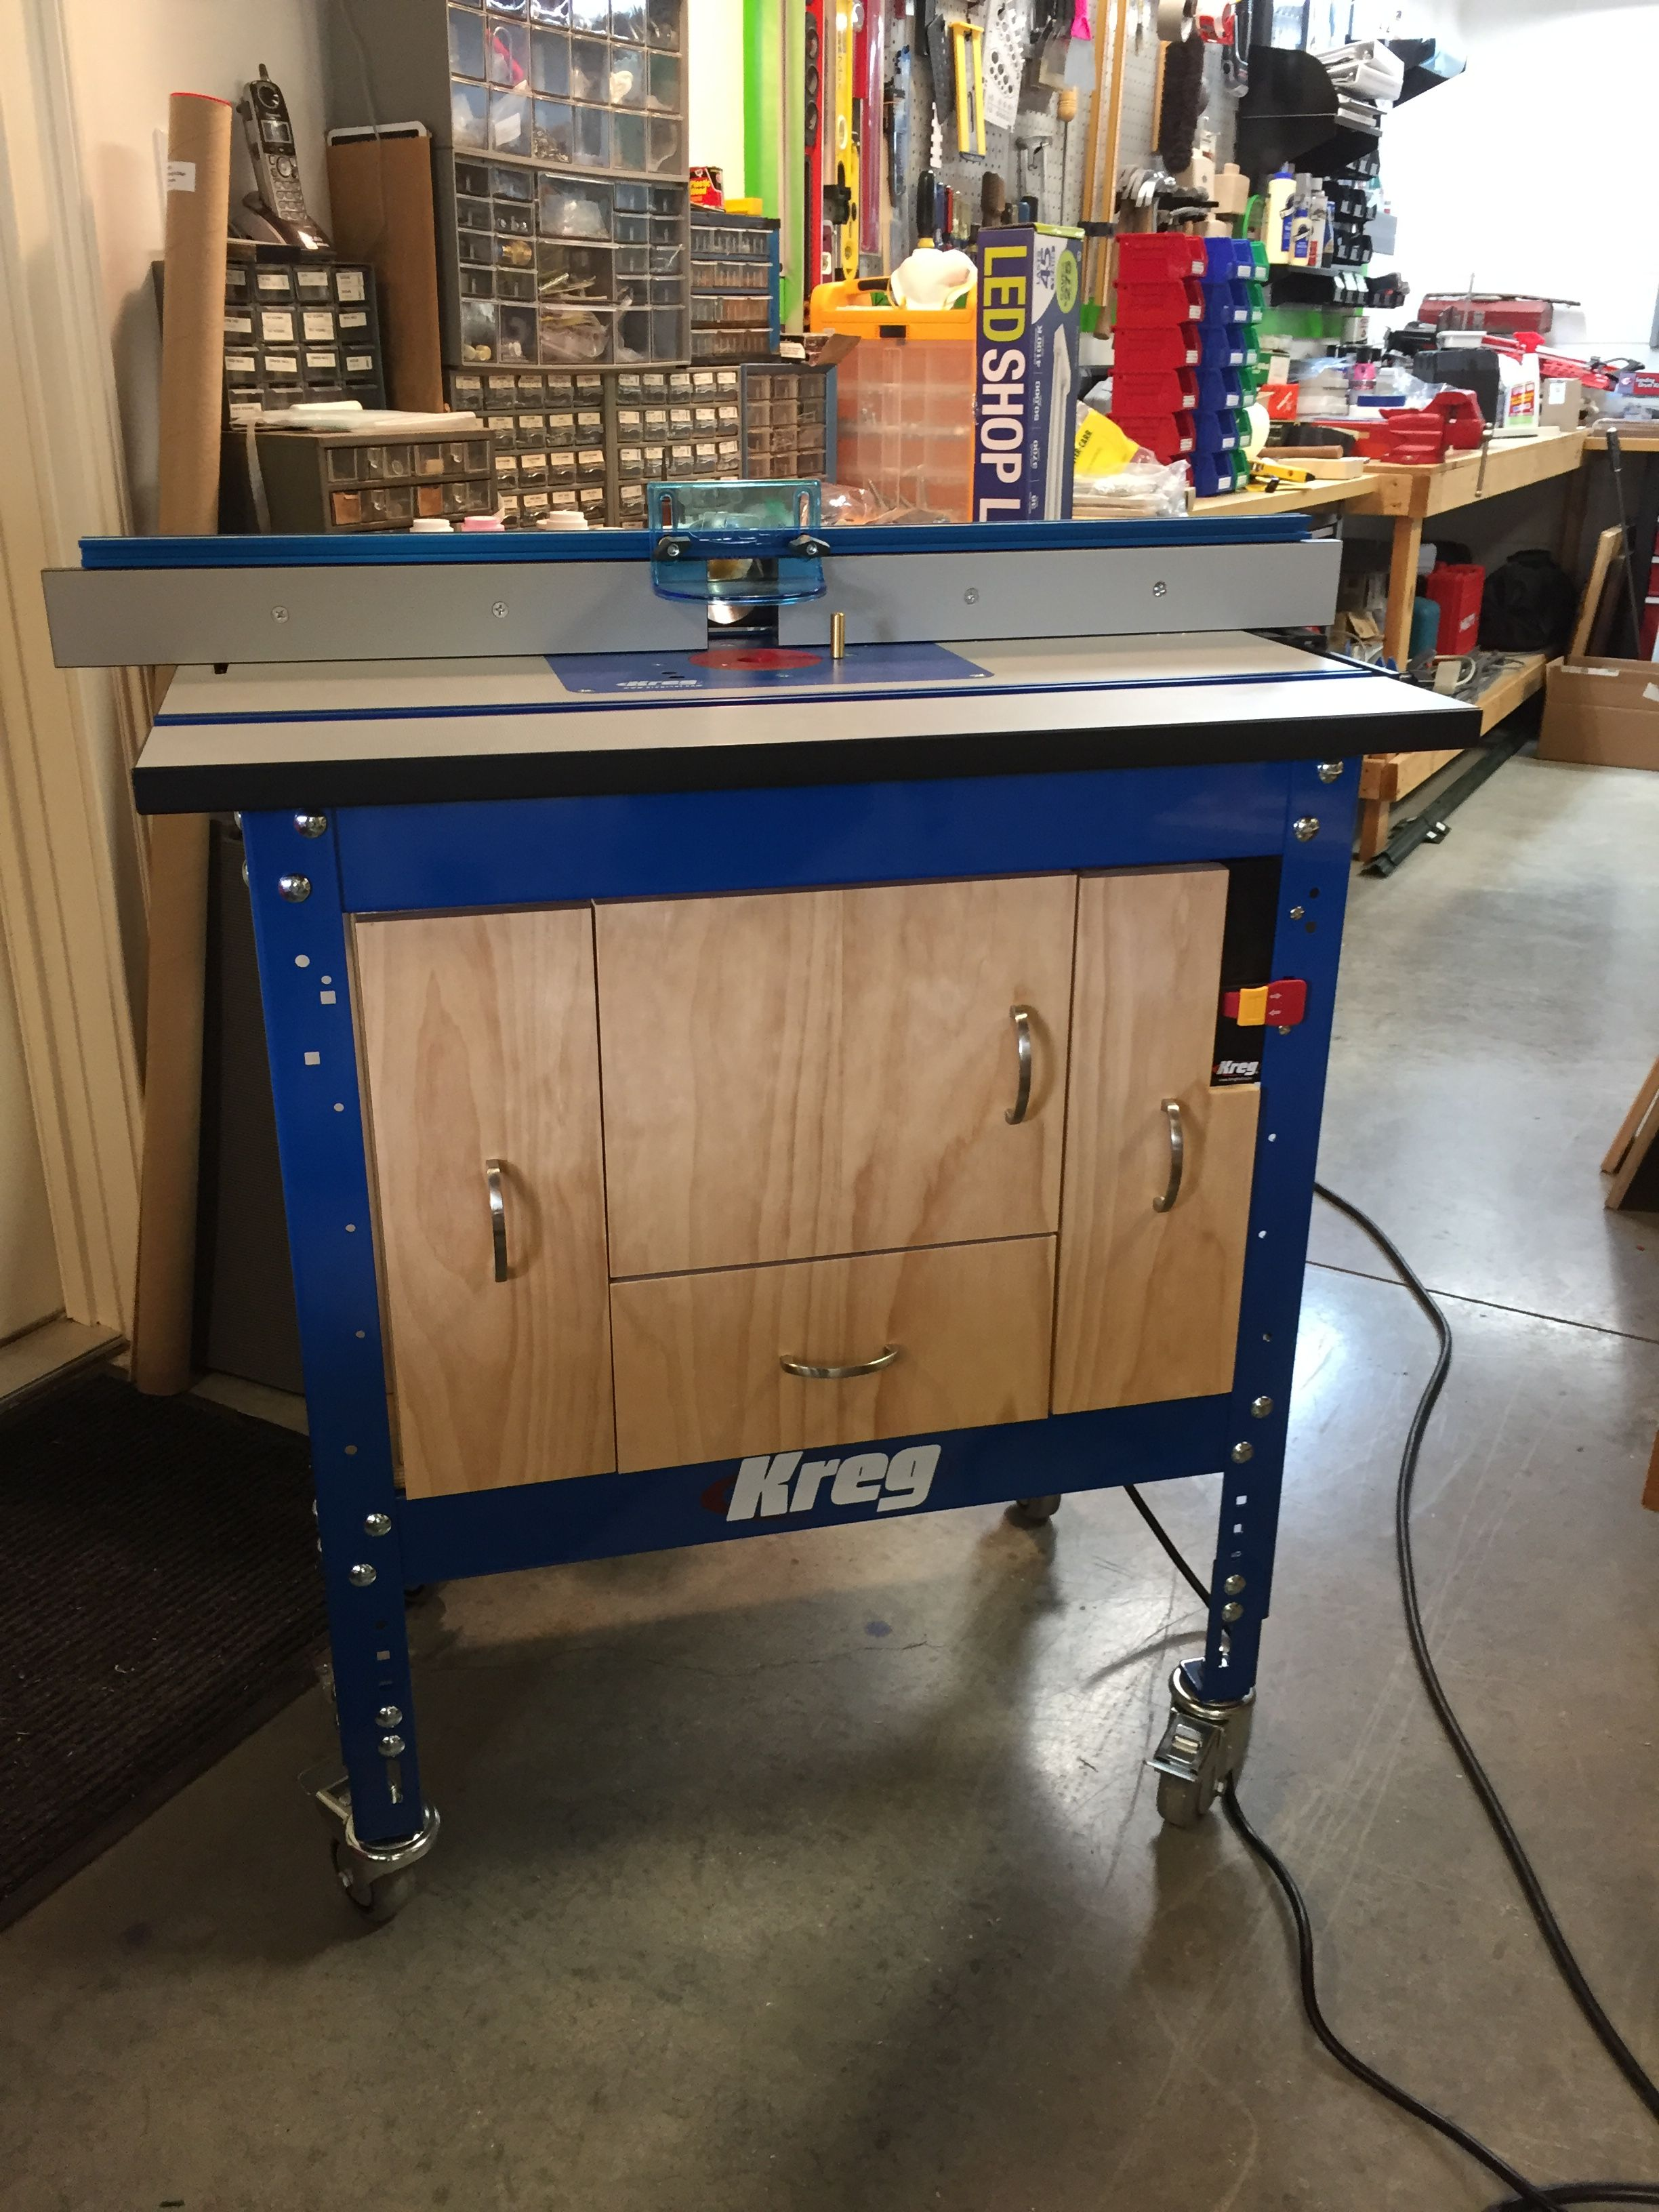 Kreg router table cabinet from kreg plans with modifications added kreg router table cabinet from kreg plans with modifications added center drawer at bottom keyboard keysfo Image collections